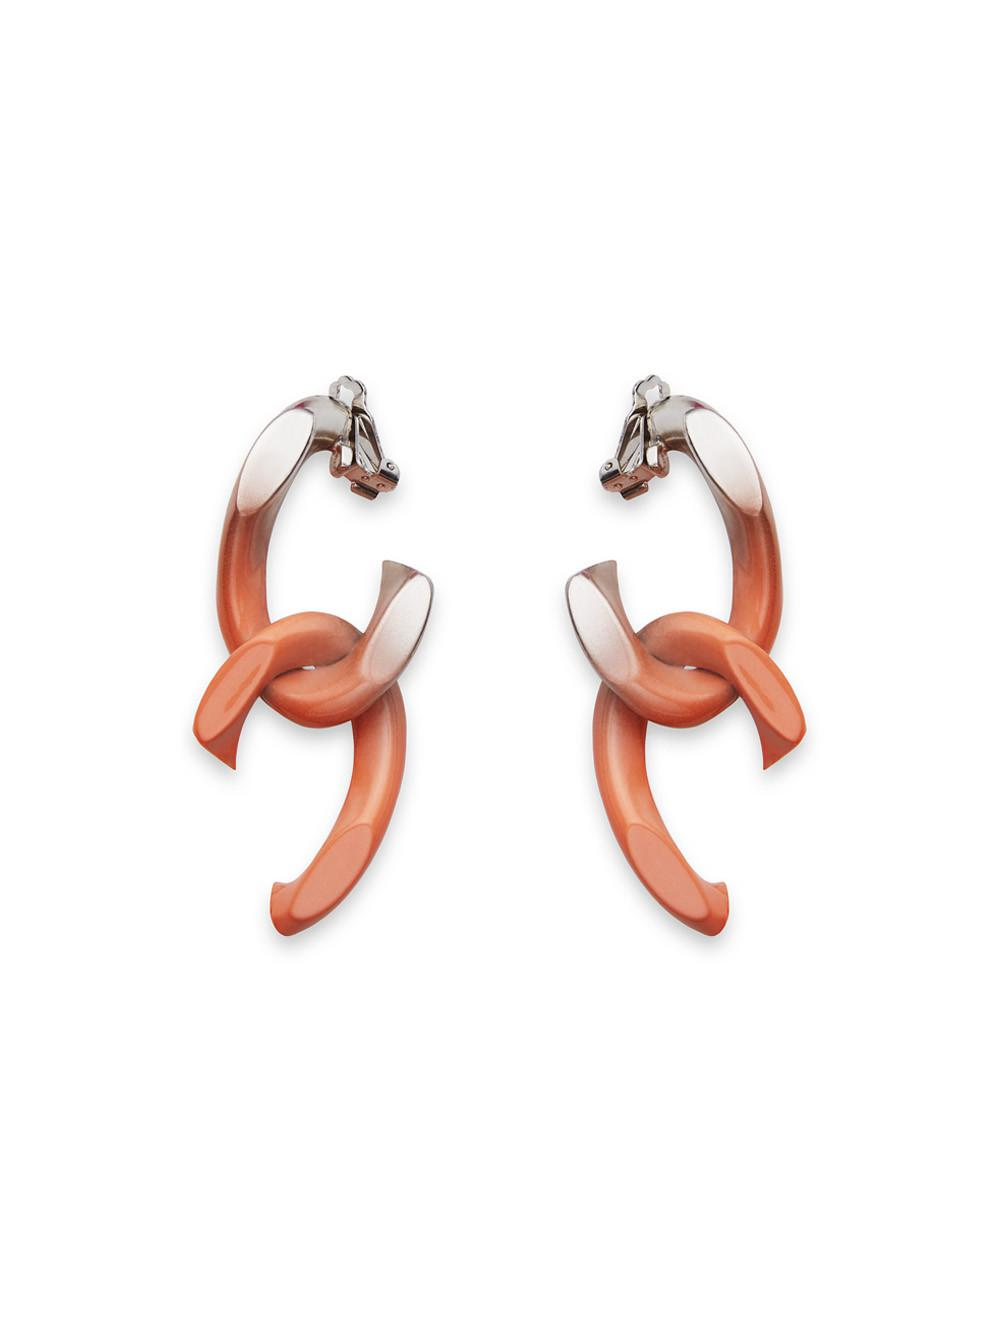 Annelise Michelson Trilliptic Bicolour Loop Earrings tEgLENUx